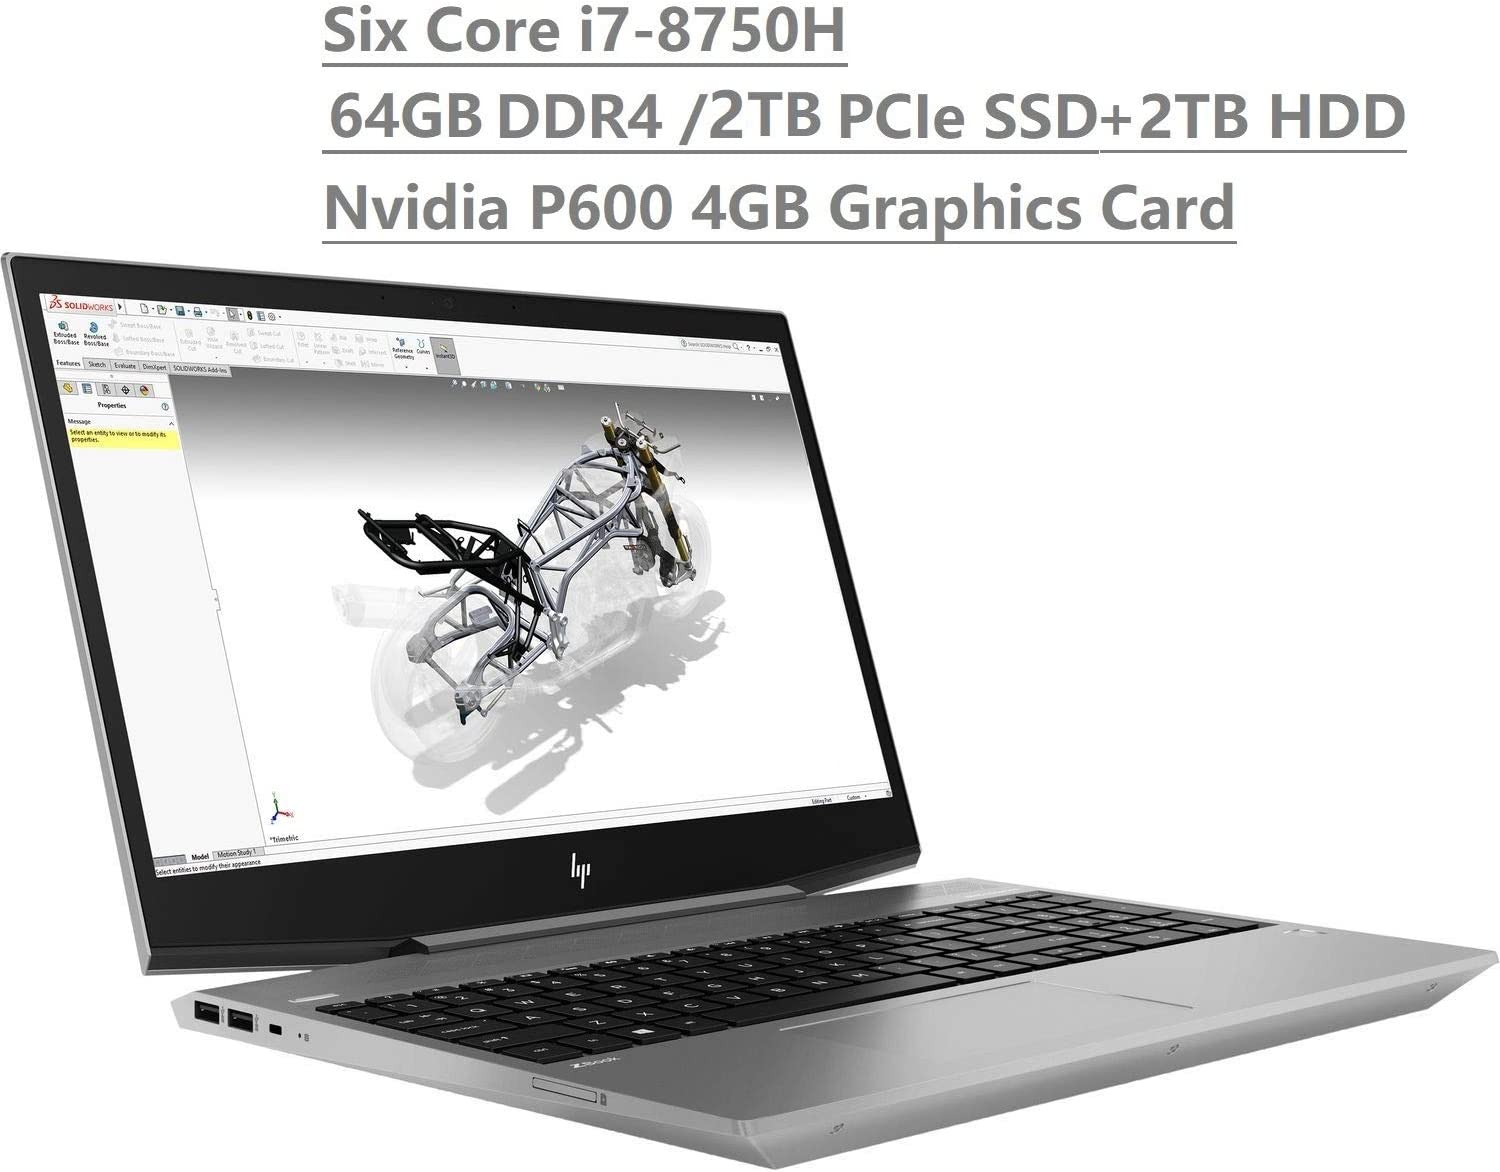 "HP Zbook 15V G5 15.6"" FHD (1920x1080) Mobile Workstation Laptop (Intel Six-Core i7-8750H, 64GB DDR4 RAM, 2TB PCIe NVMe SSD+2TB HDD) Fingerprint, Backlit, Type-C, Thunderbolt 3, Windows 10 Pro 64-bit"